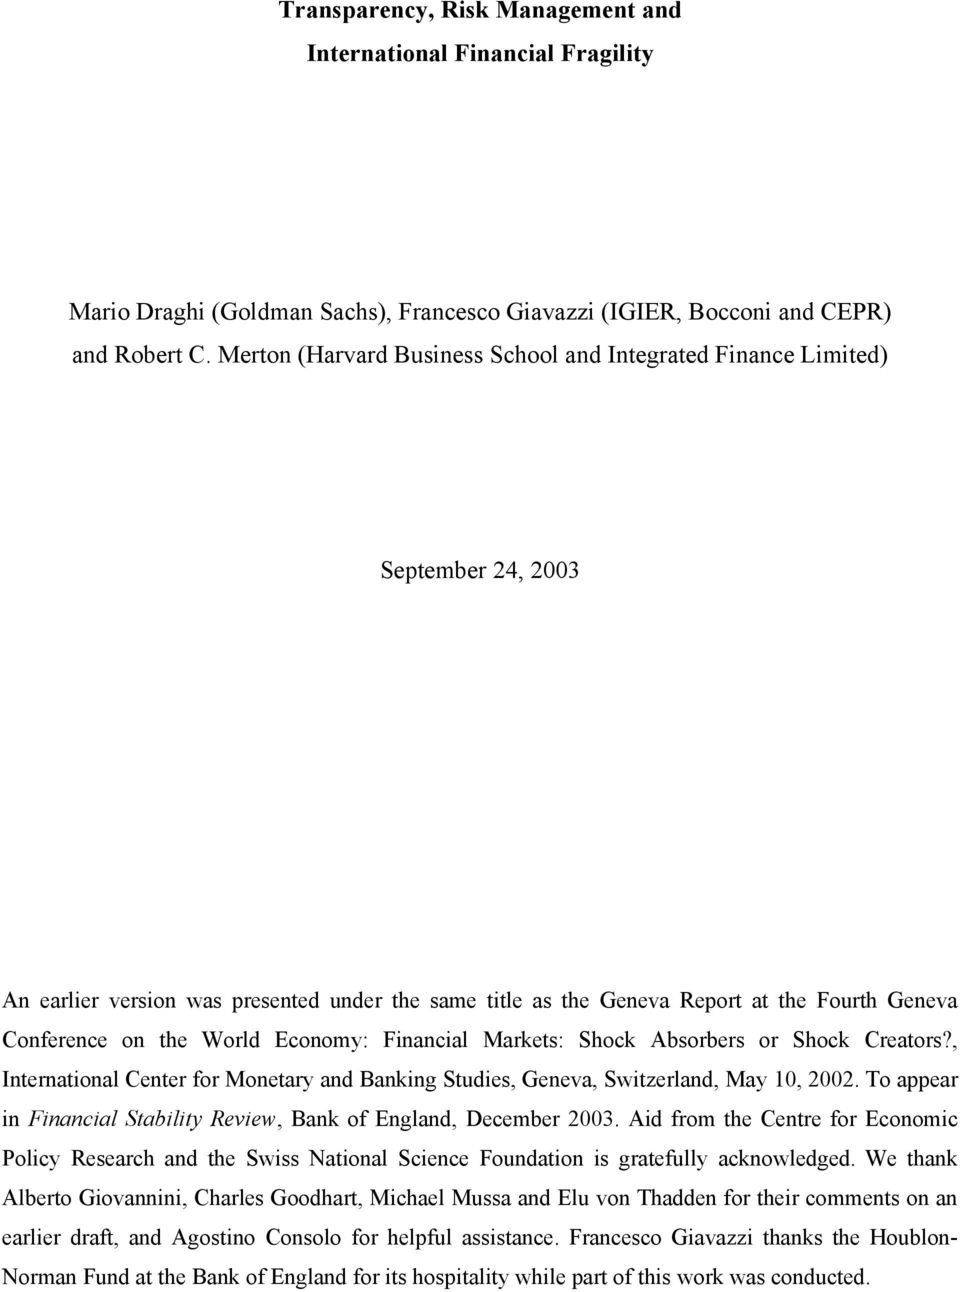 World Economy: Financial Markets: Shock Absorbers or Shock Creators?, International Center for Monetary and Banking Studies, Geneva, Switzerland, May 10, 2002.